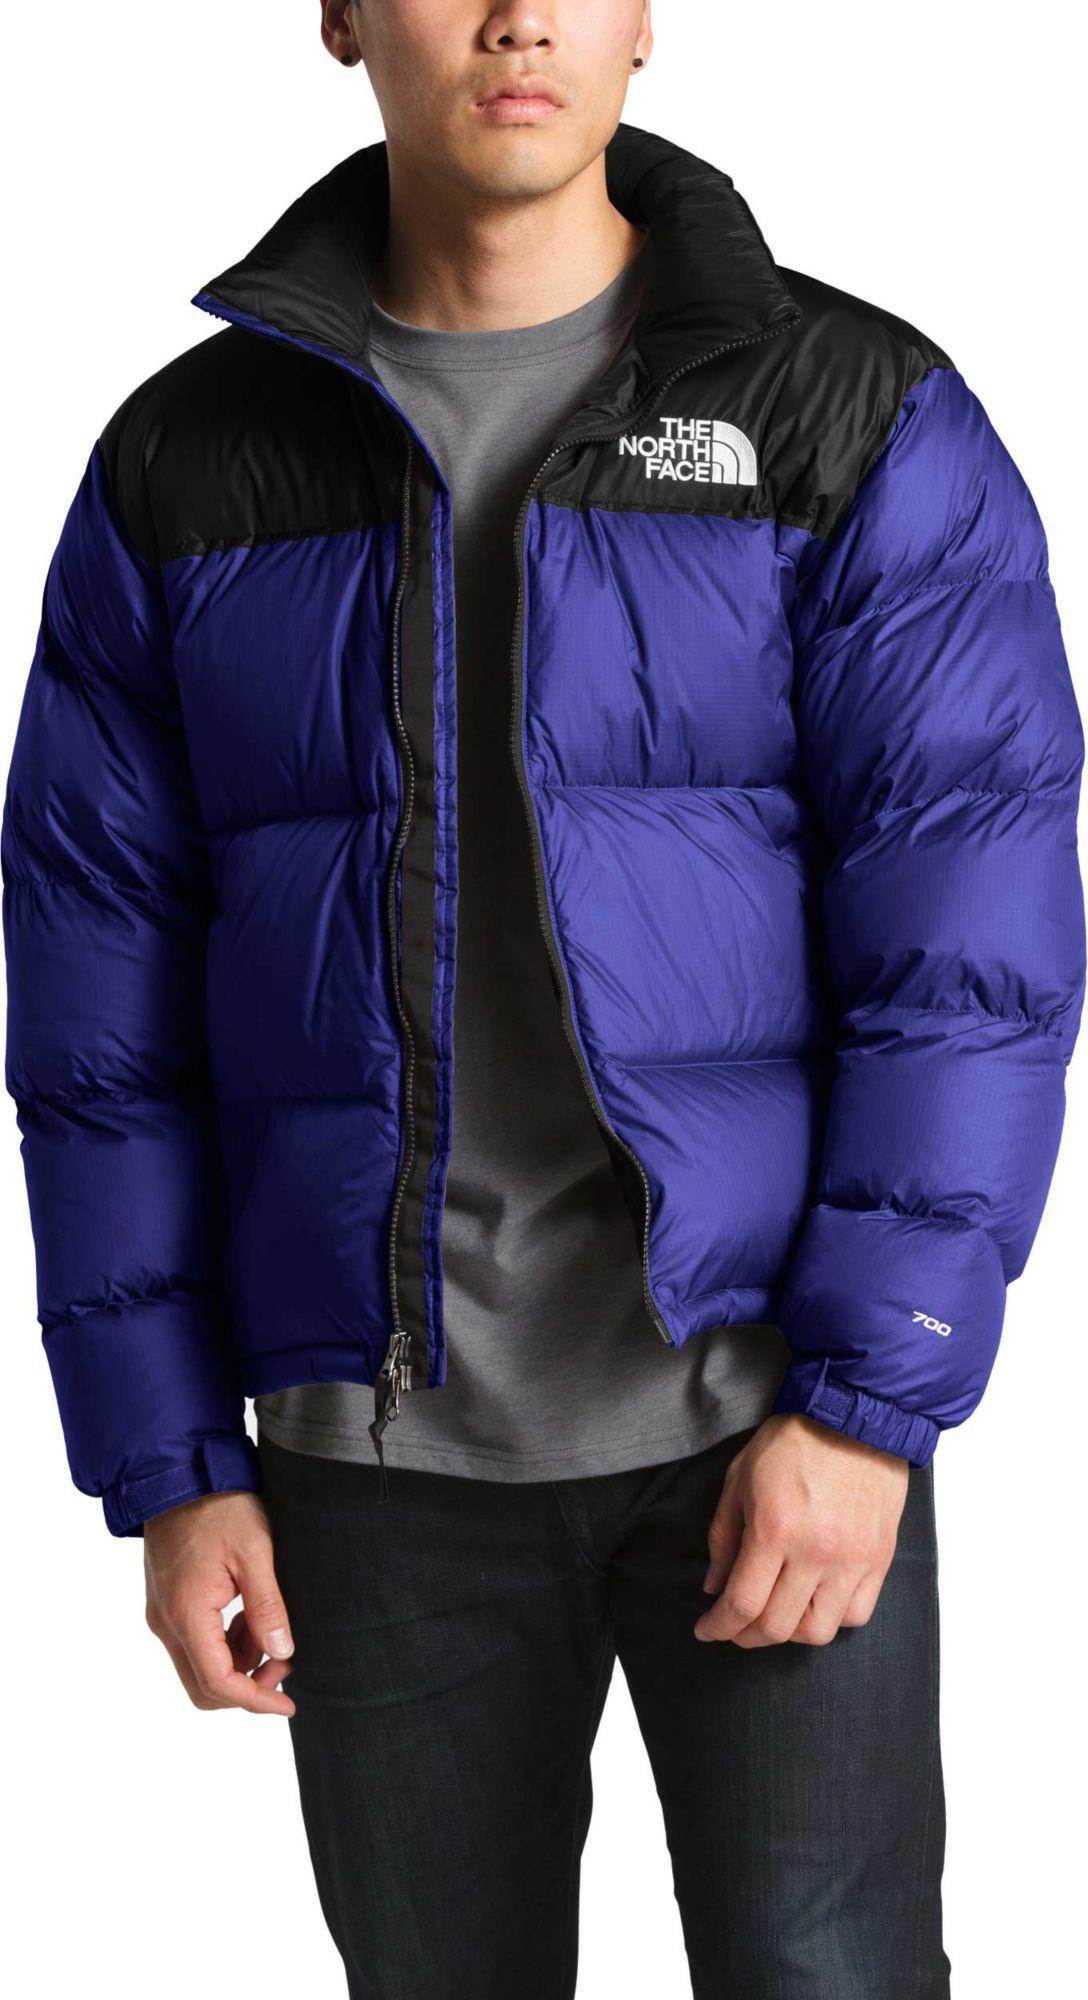 Lyst - The North Face 1996 Retro Nuptse Jacket in Blue for Men ... 8bf7e763c